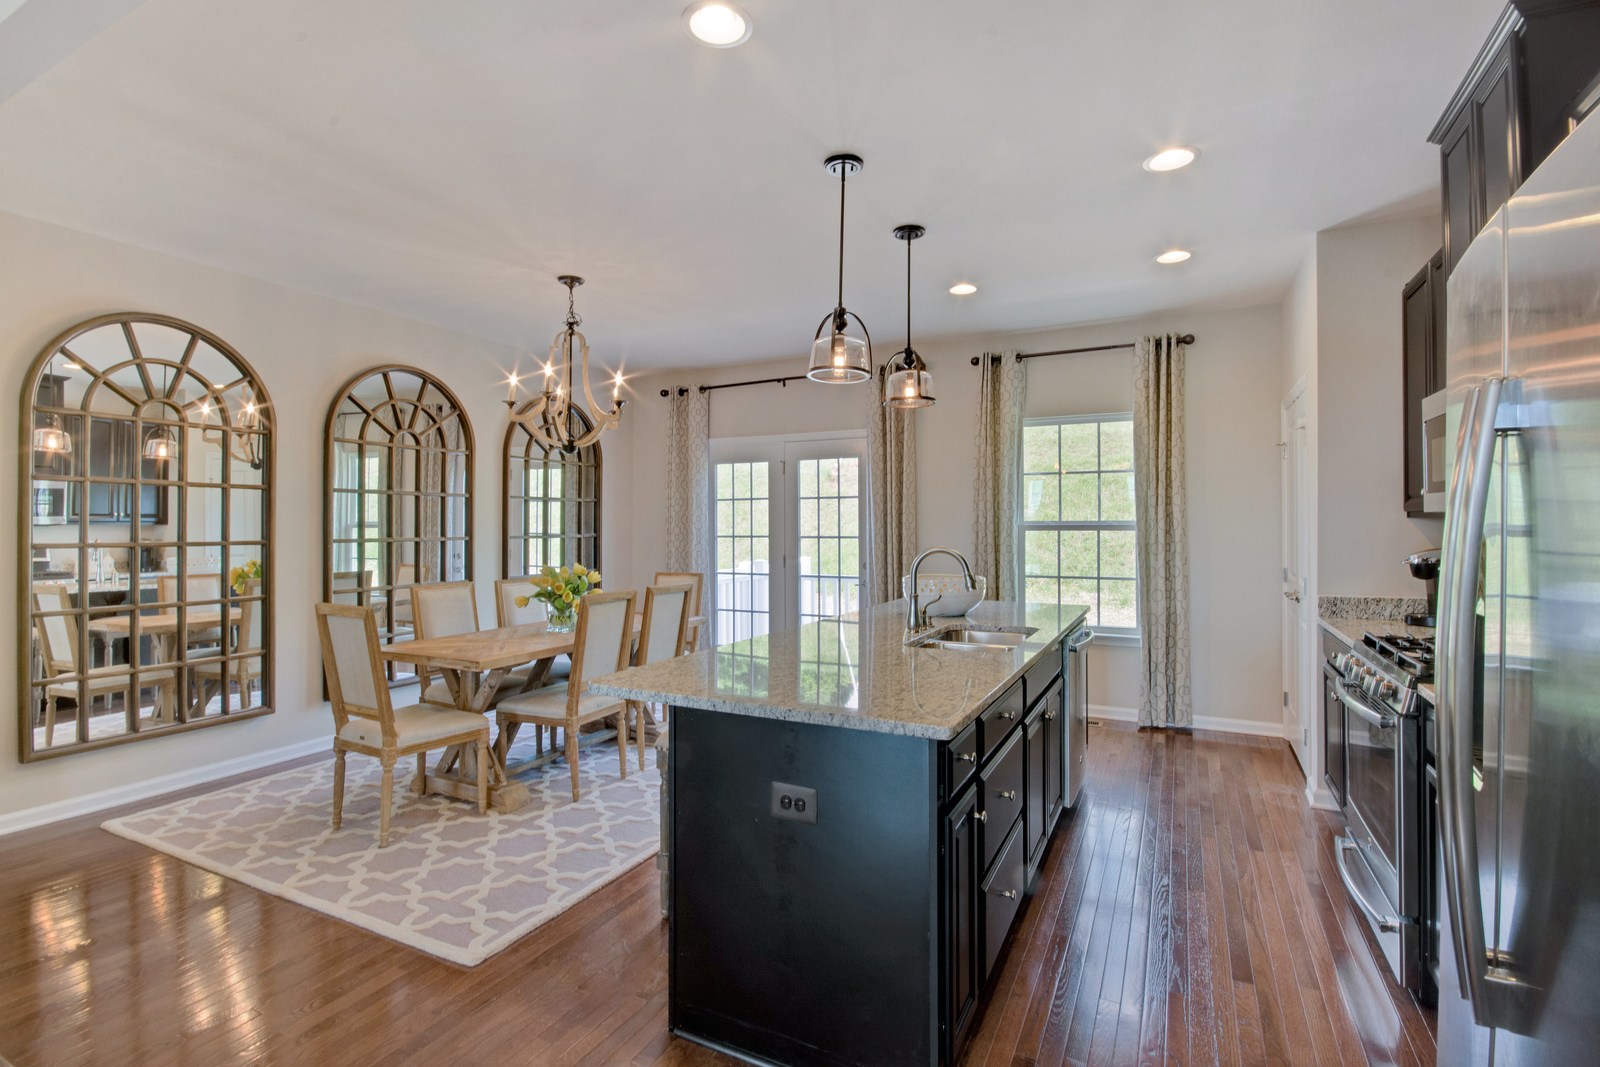 New homes for sale at pinnacle place in washington township nj own a new luxury garage townhome at pinnacle place solutioingenieria Choice Image